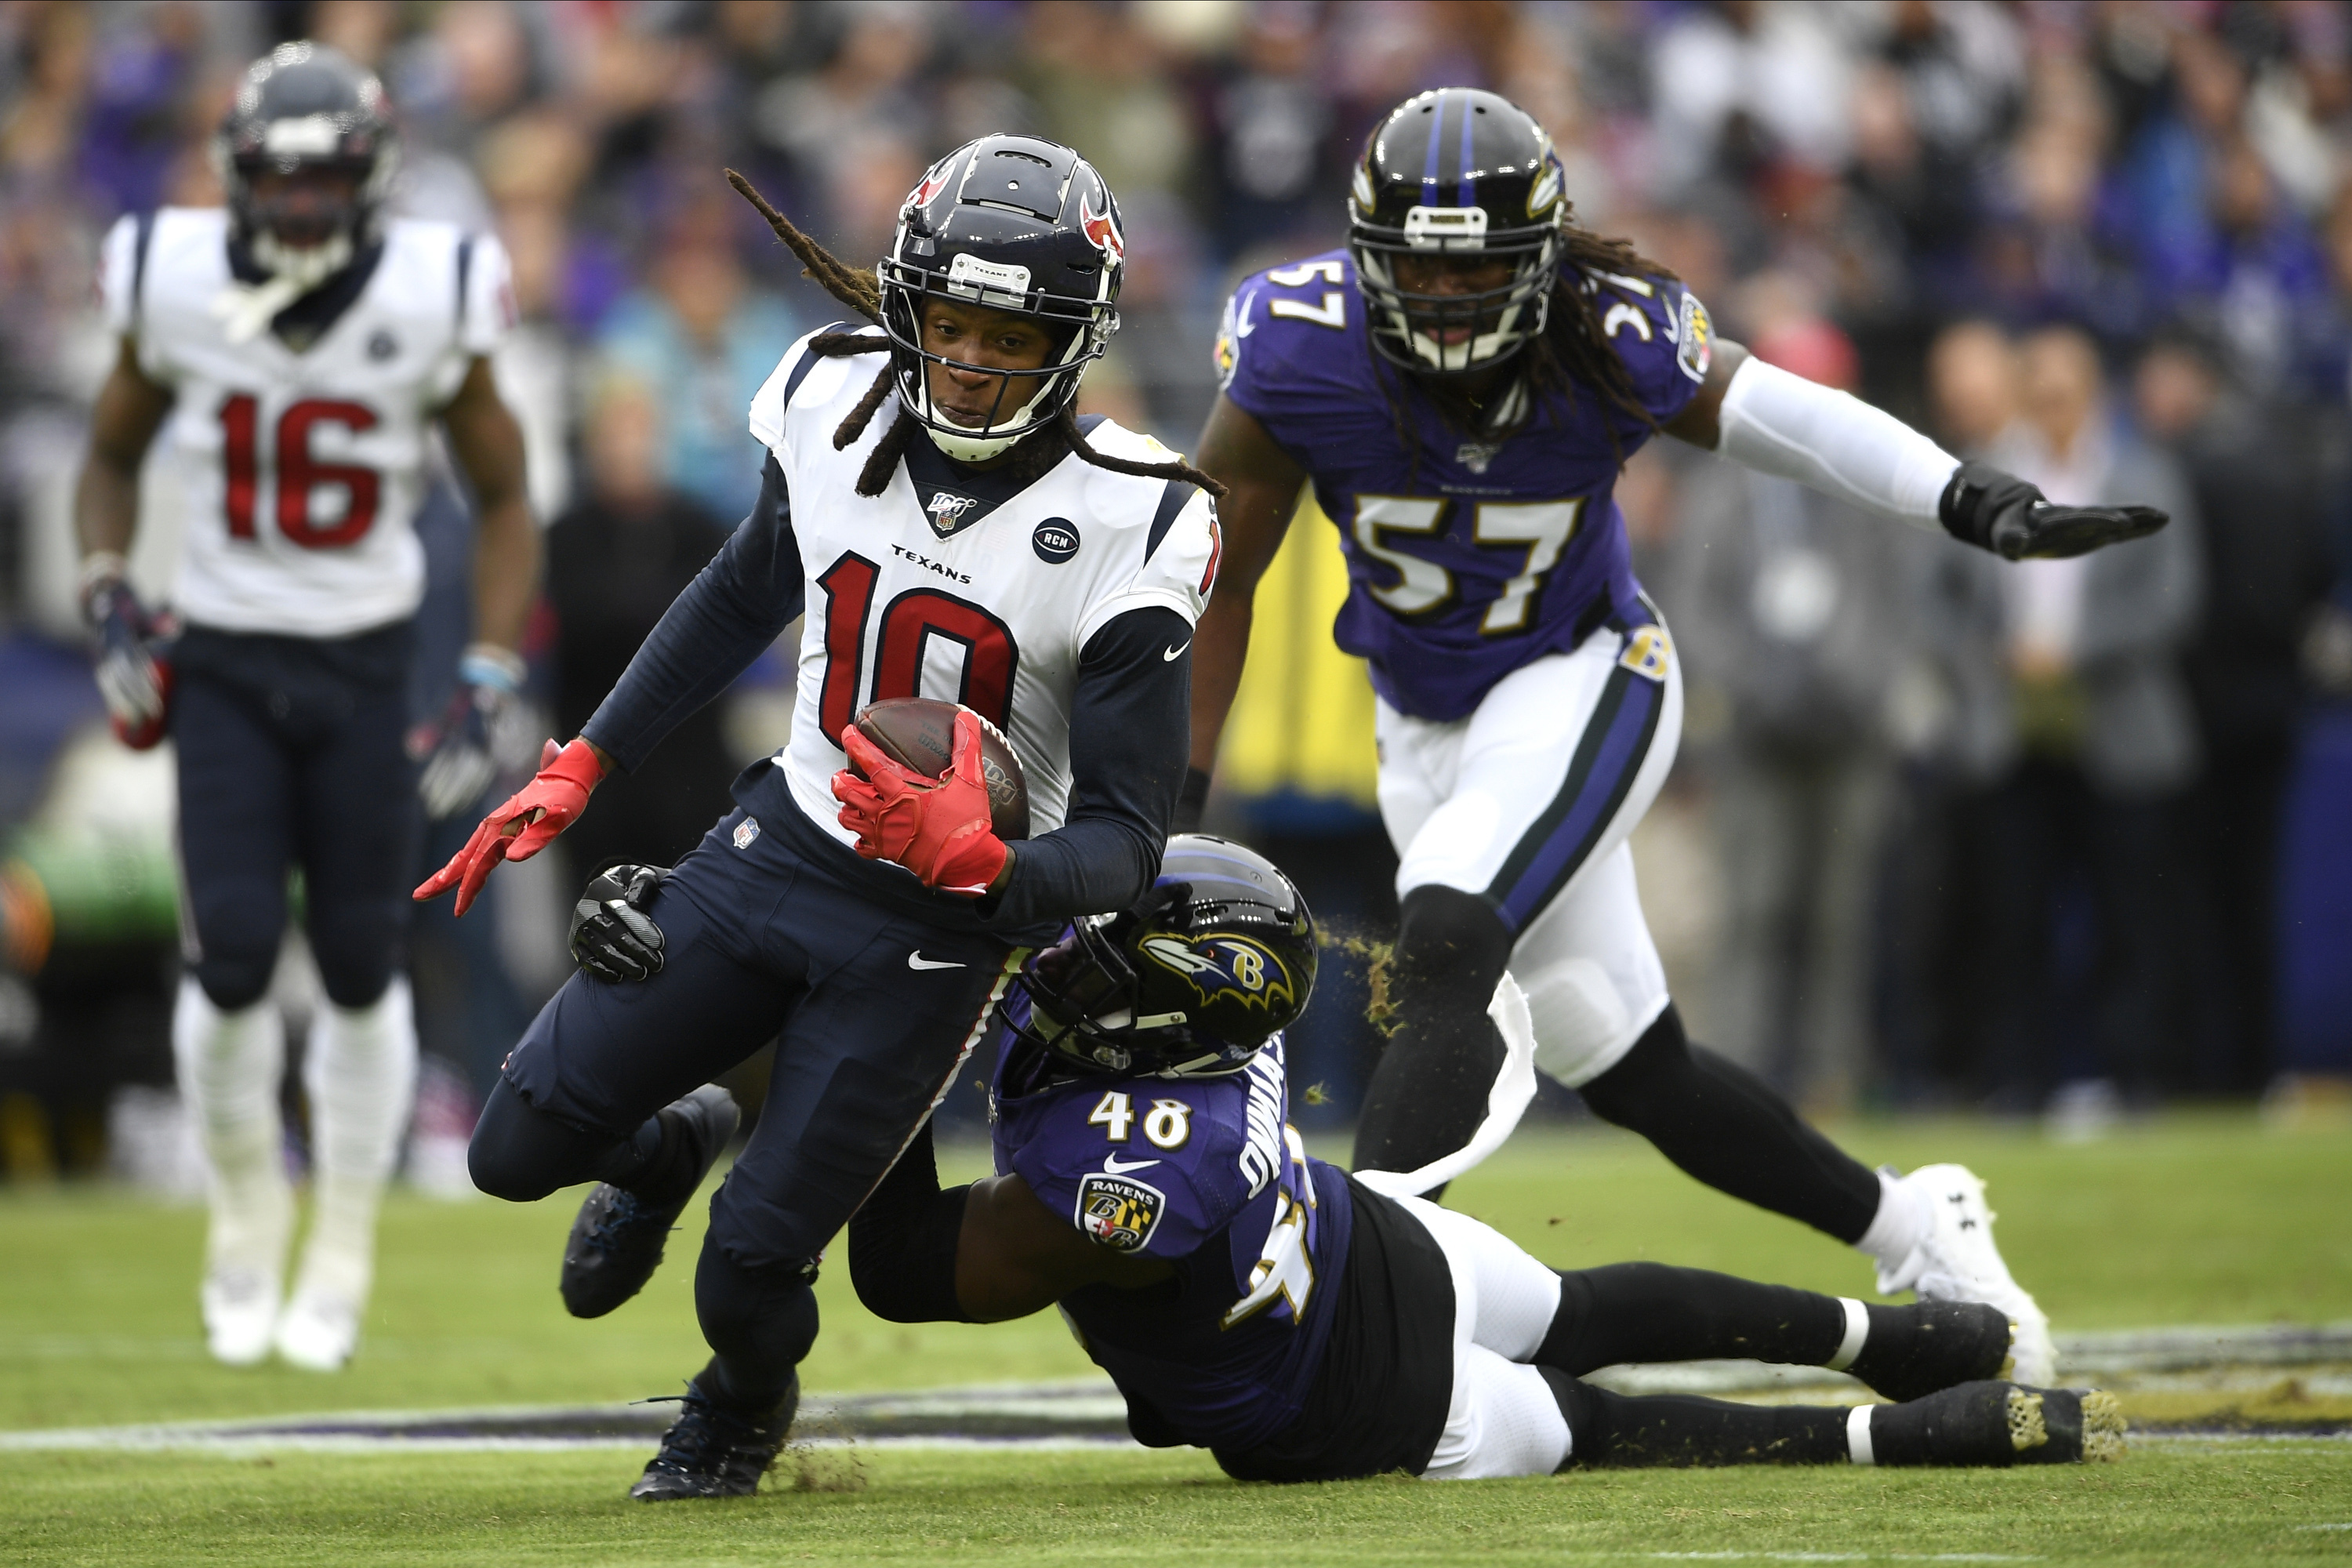 Useless rule? Refs miss blatant pass interference despite Texans' challenge